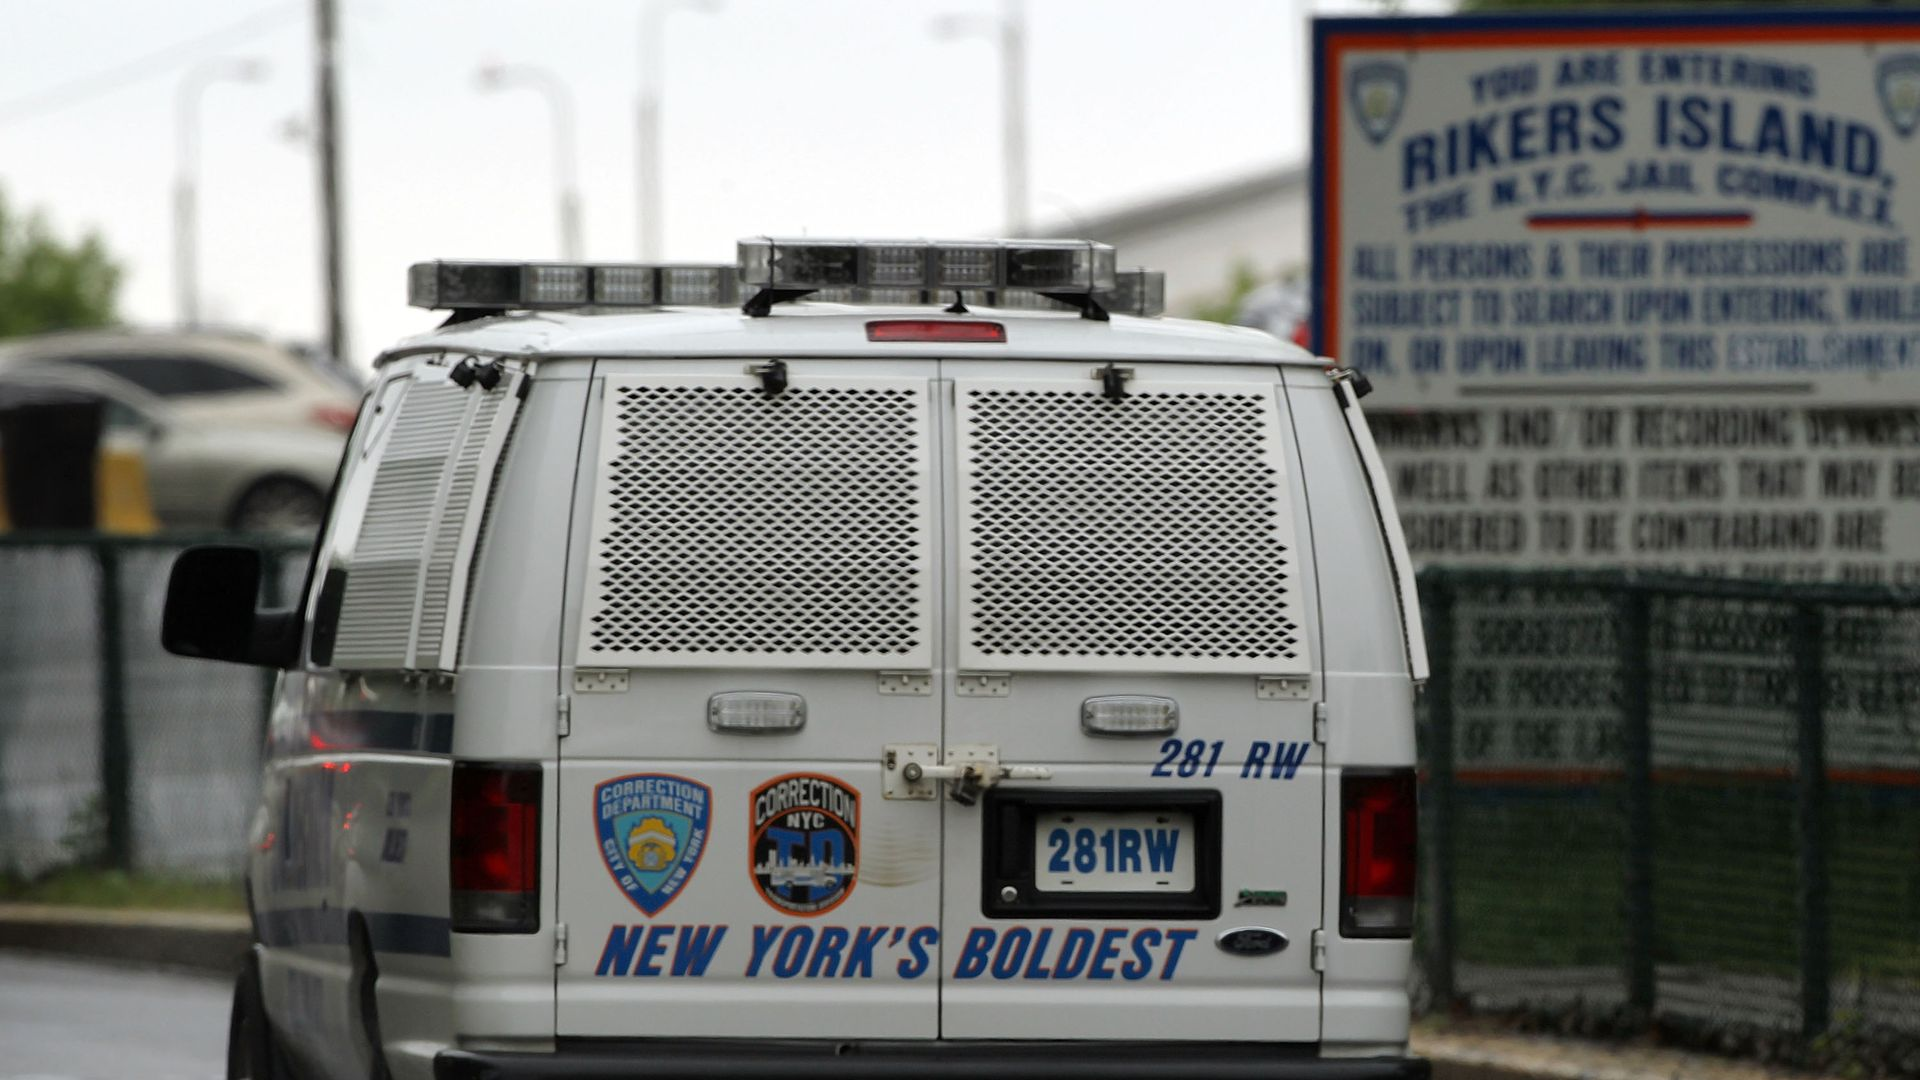 Entrance of the Rikers Island prison complex in New York City. Photo: Spencer Platt/Getty Images